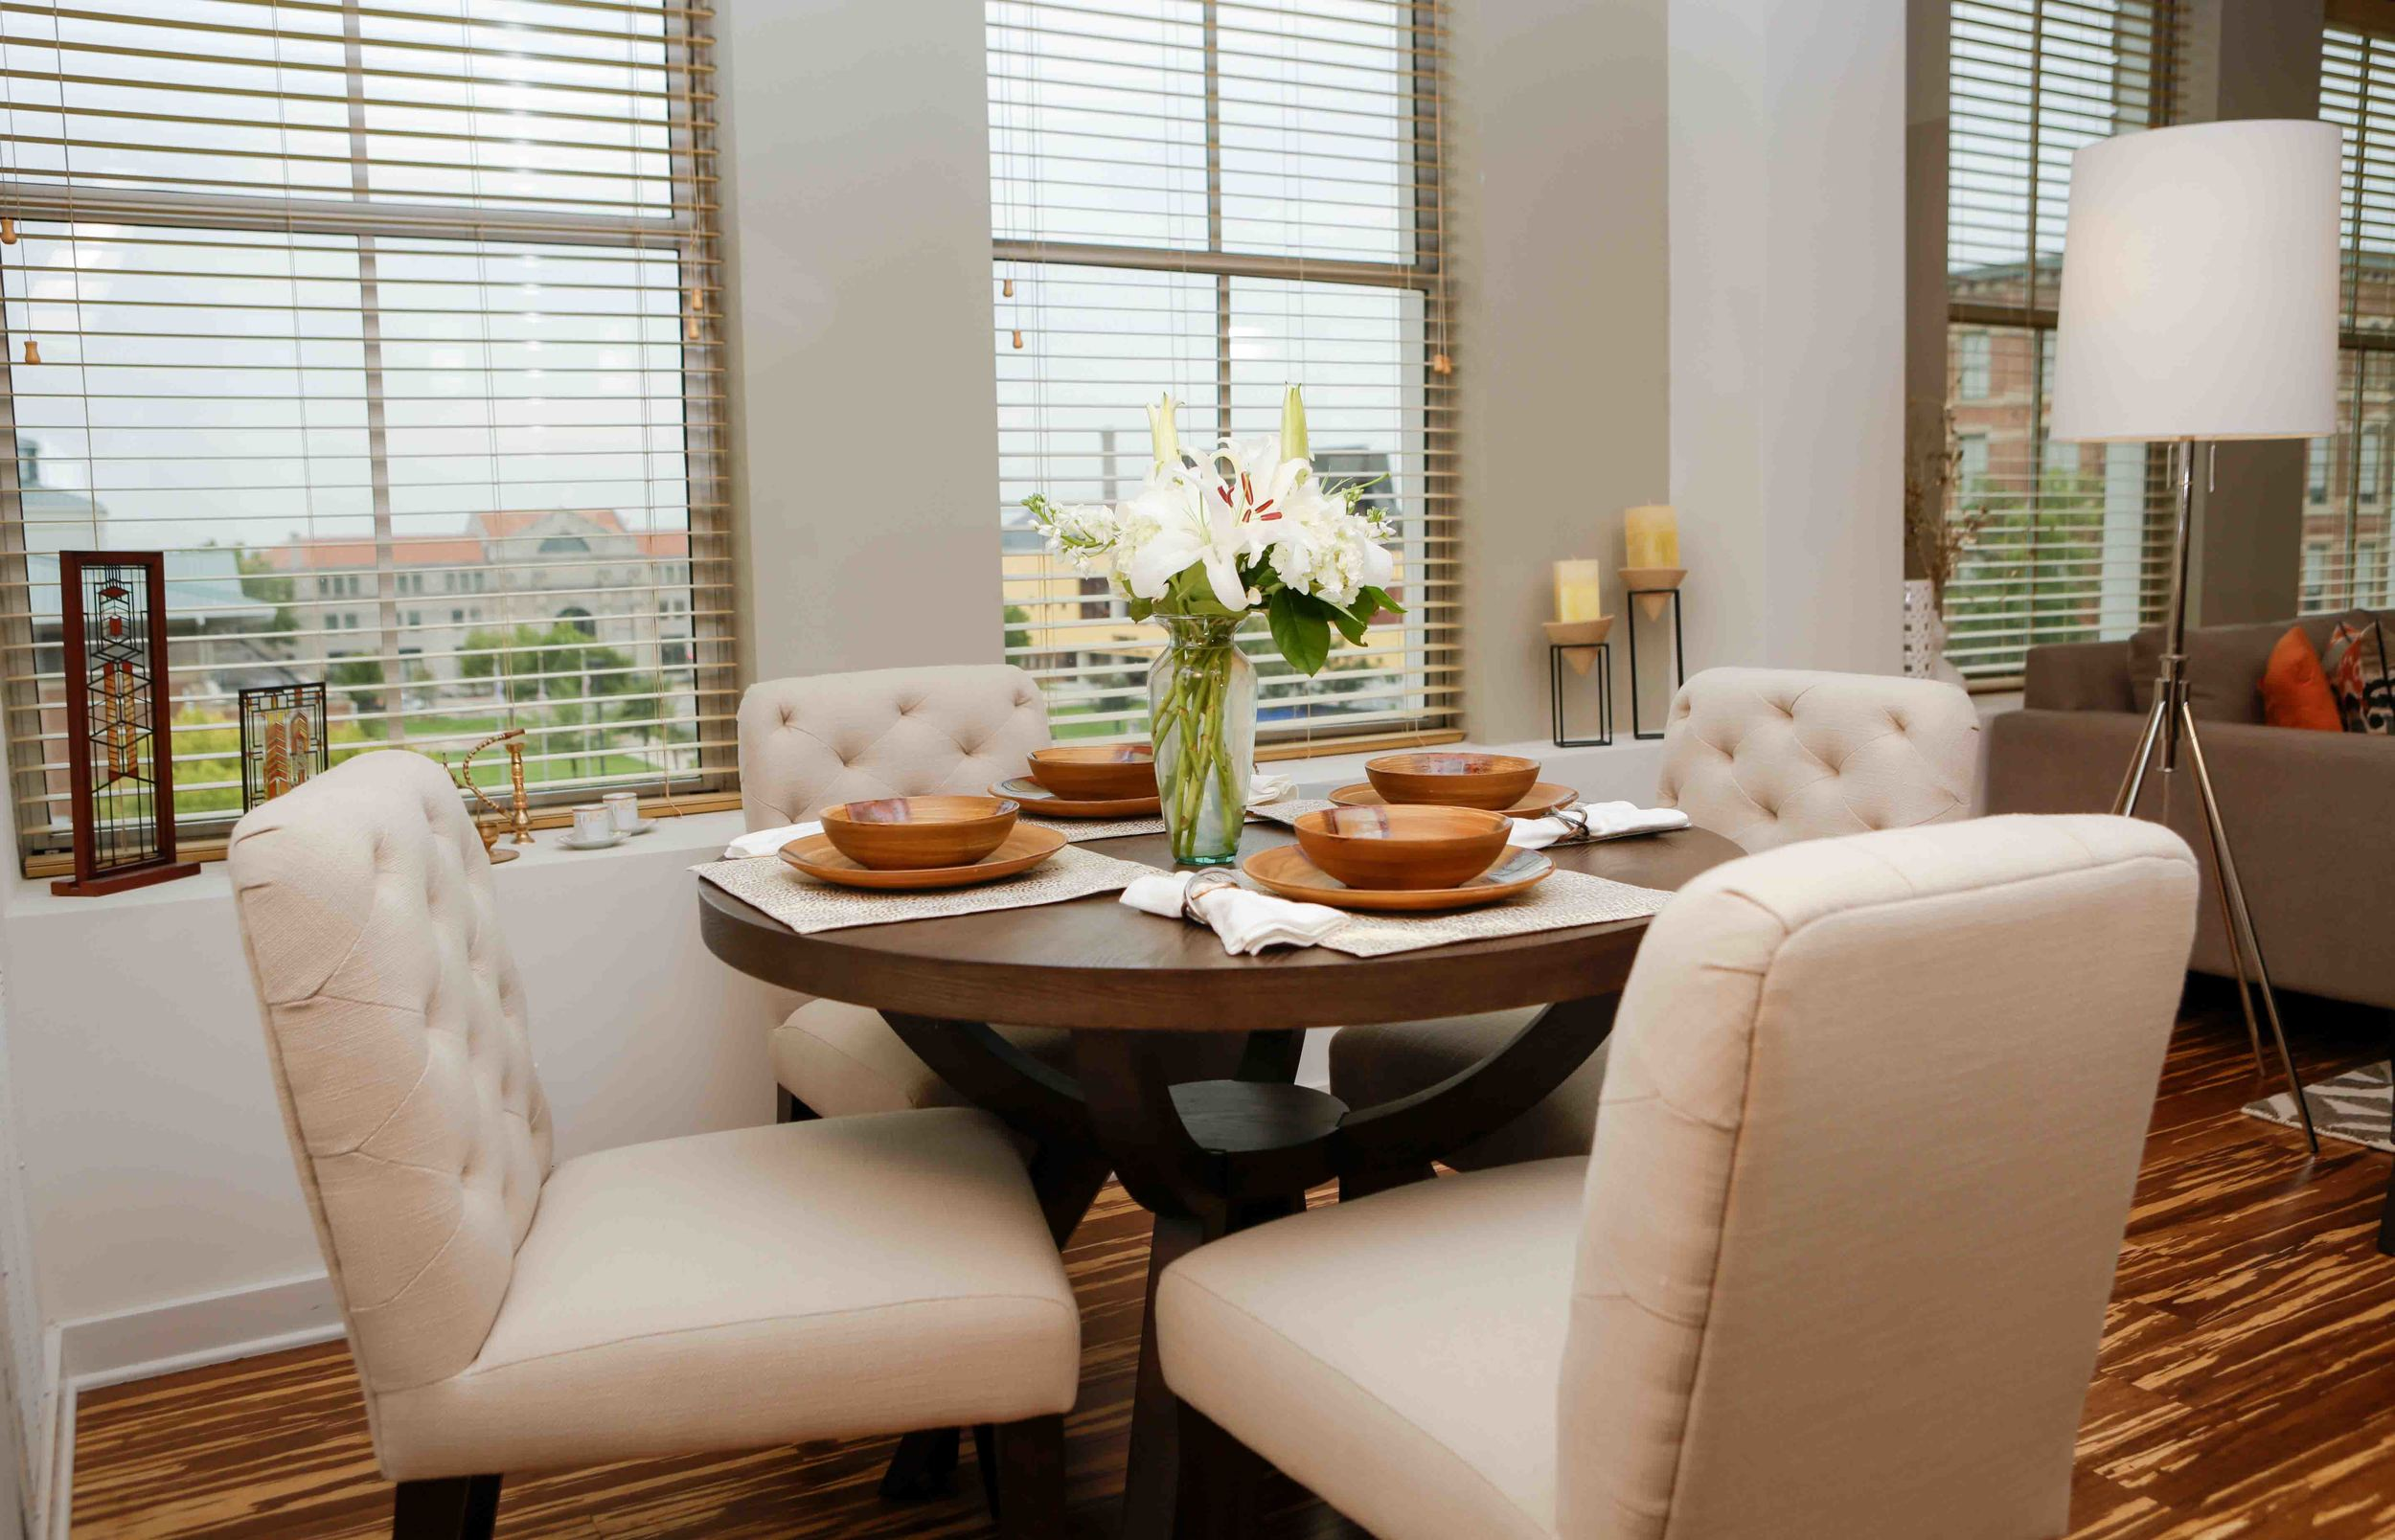 Furnished Apartments in Macon GA